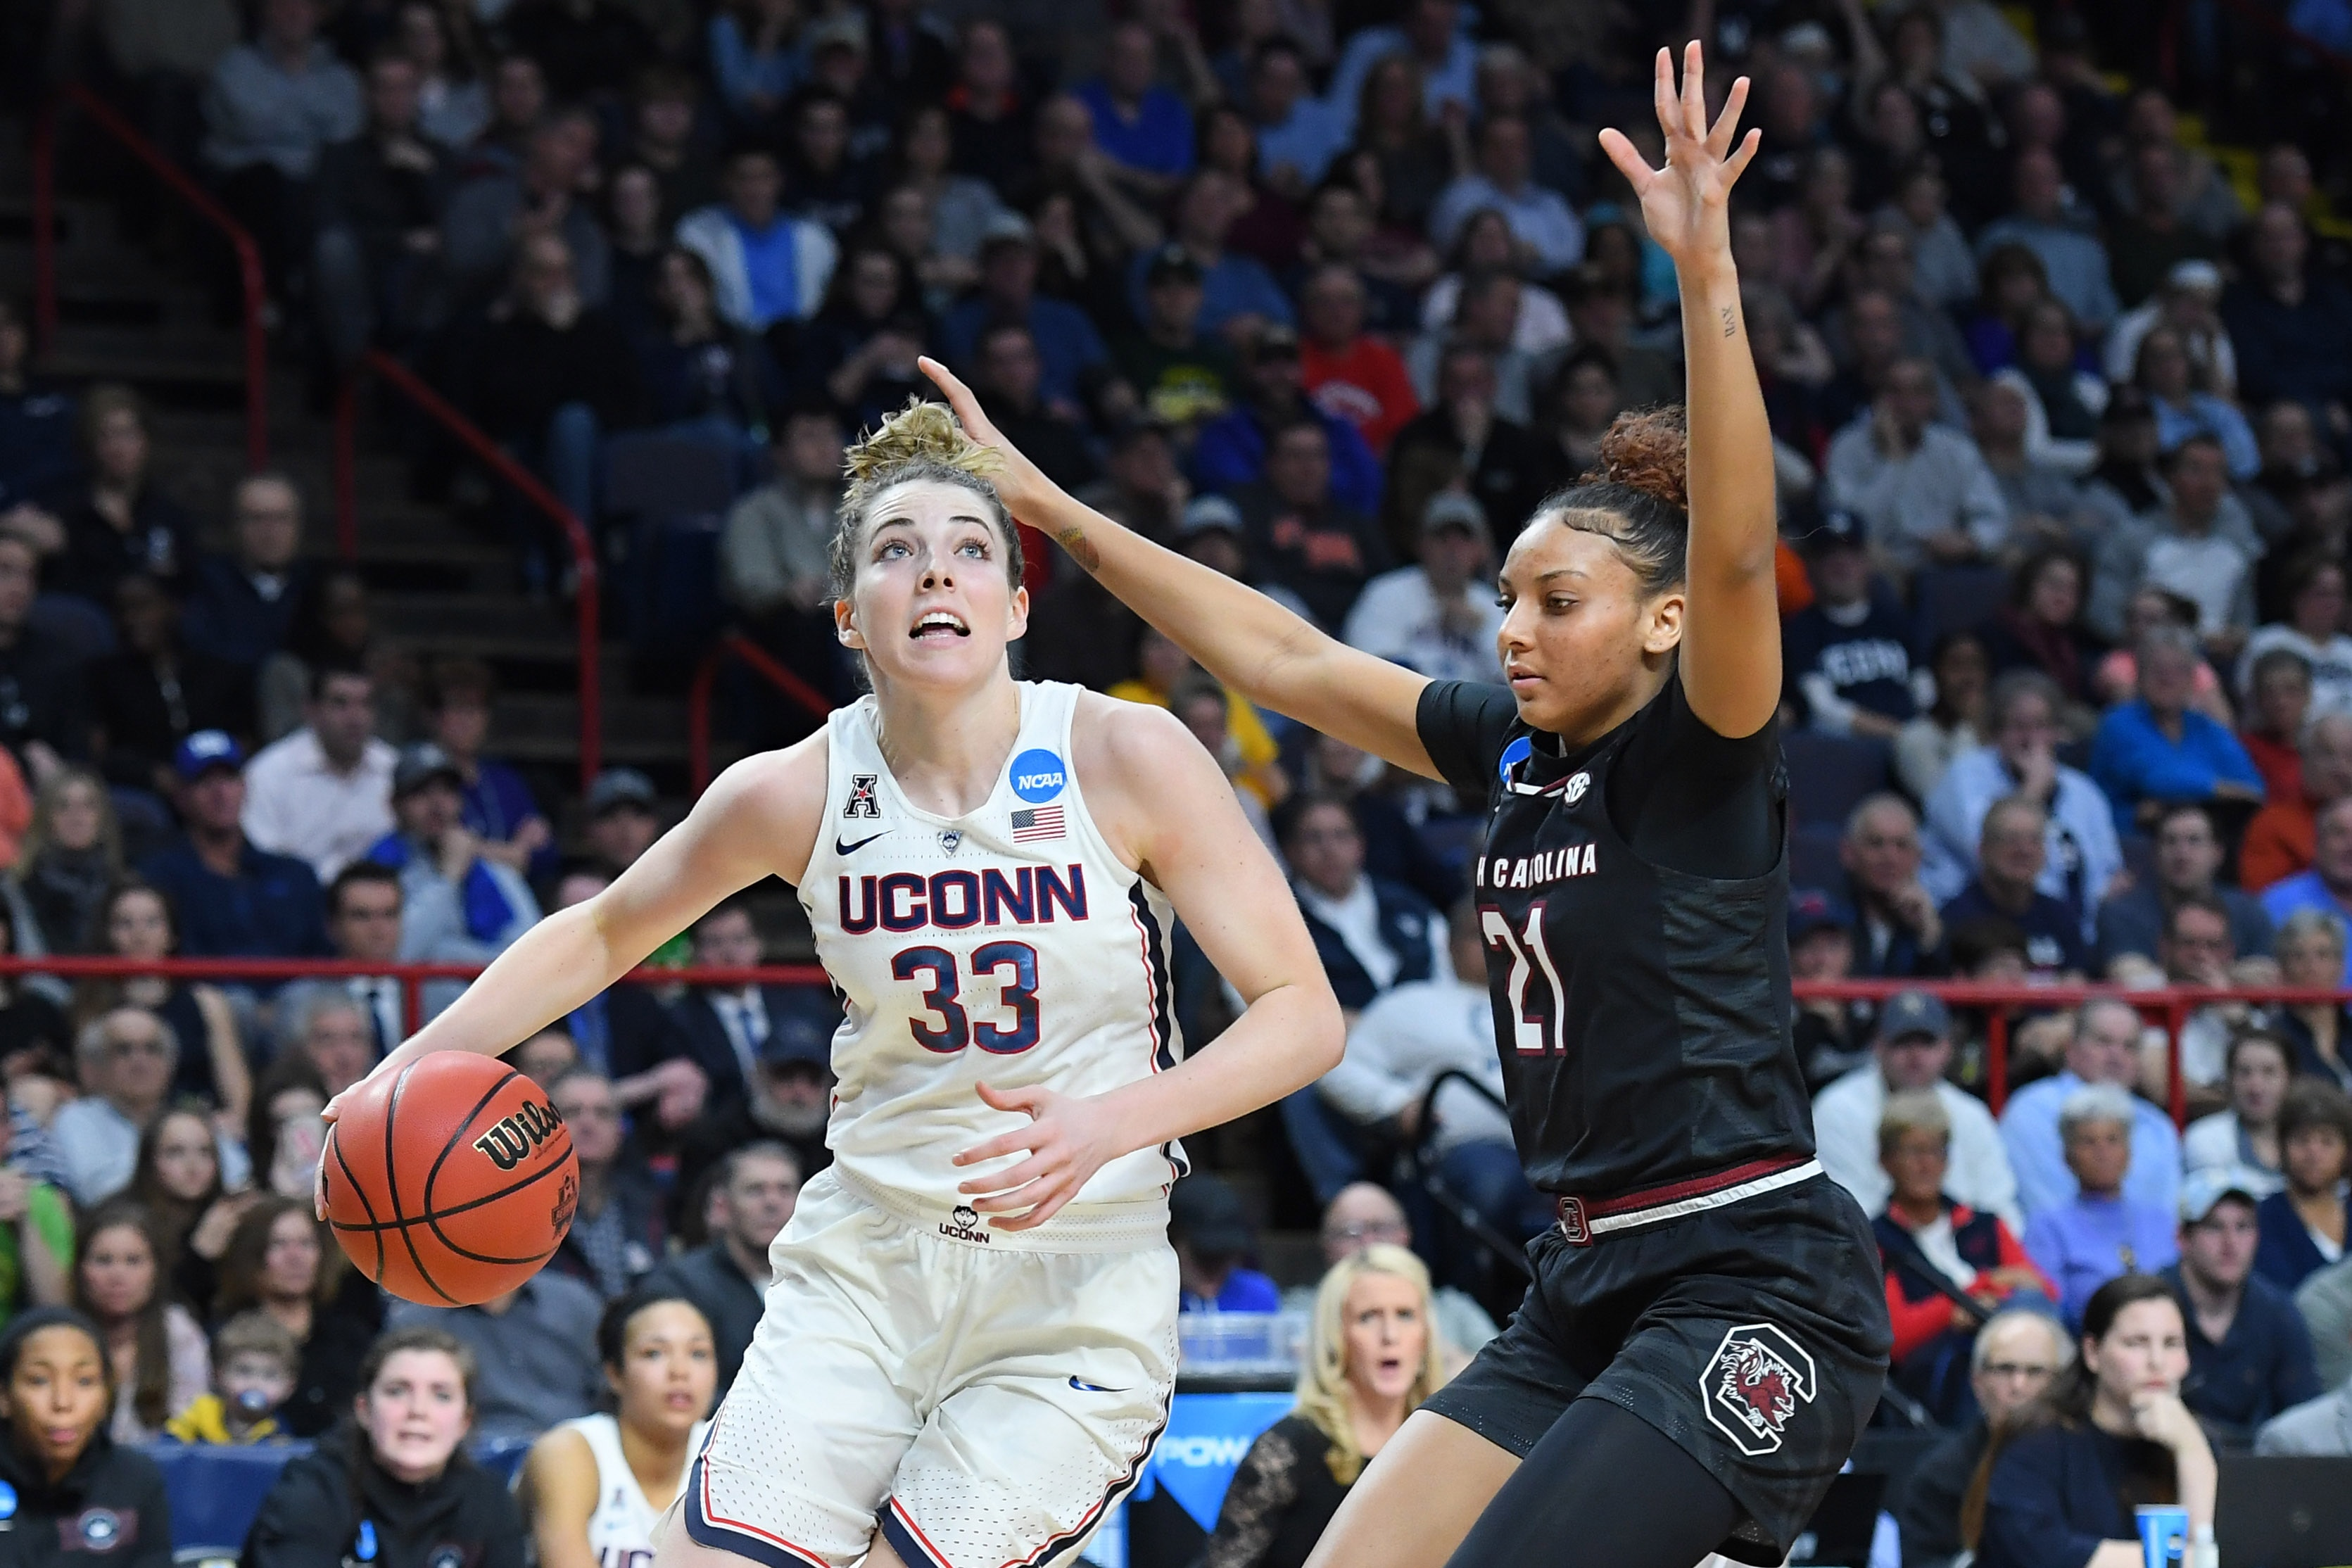 uconn women's basketball takes early lead, dominates no. 1 notre